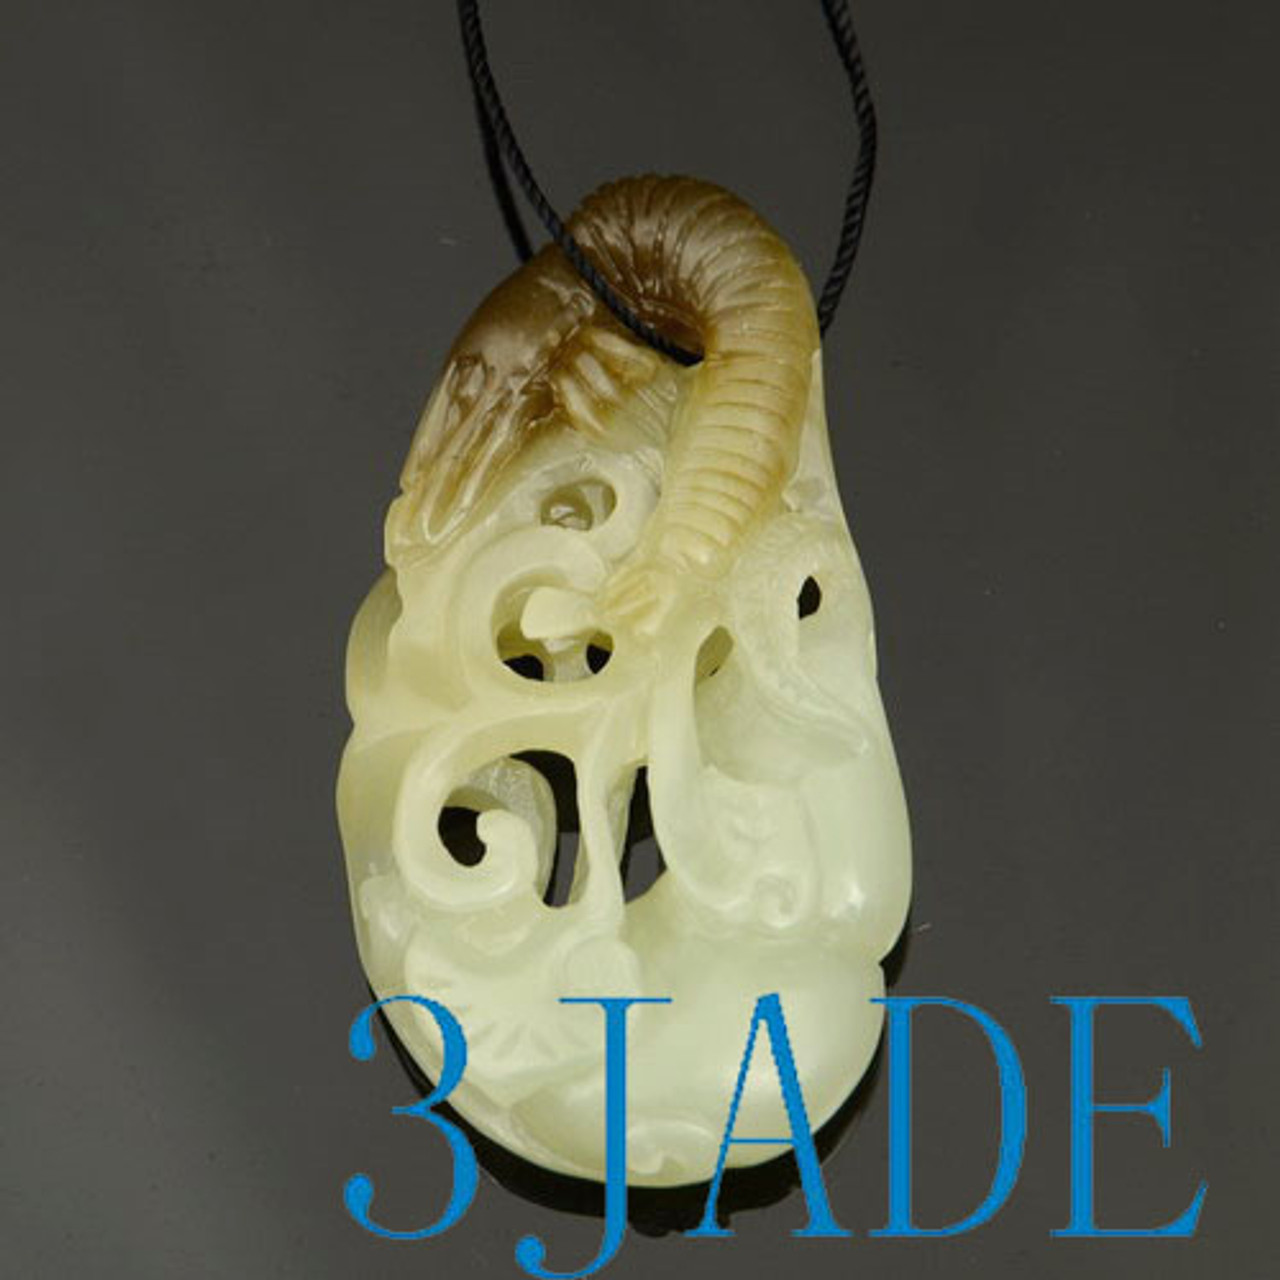 Hand Carved White & Brown Nephrite Jade Shrimp Pendant Necklace w/ Certificate